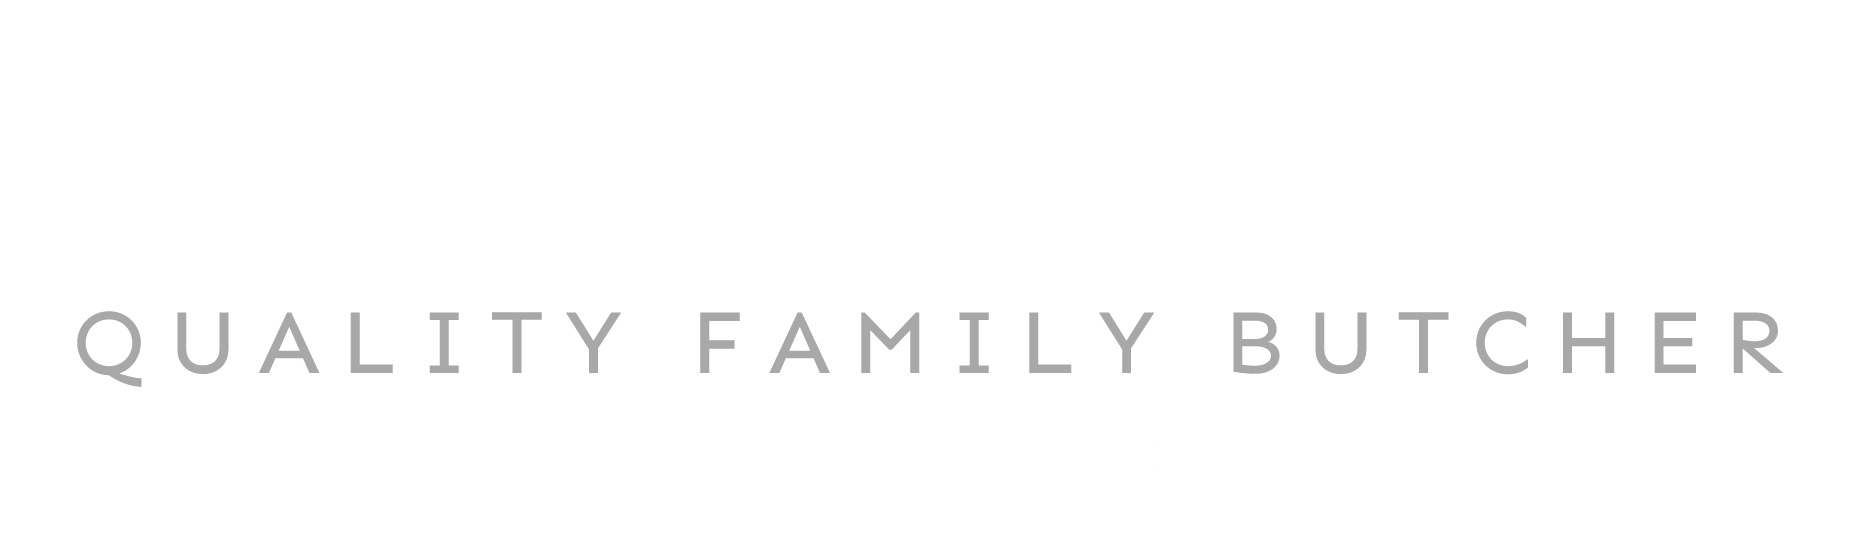 Saunderson's Quality Family Butcher Edinburgh